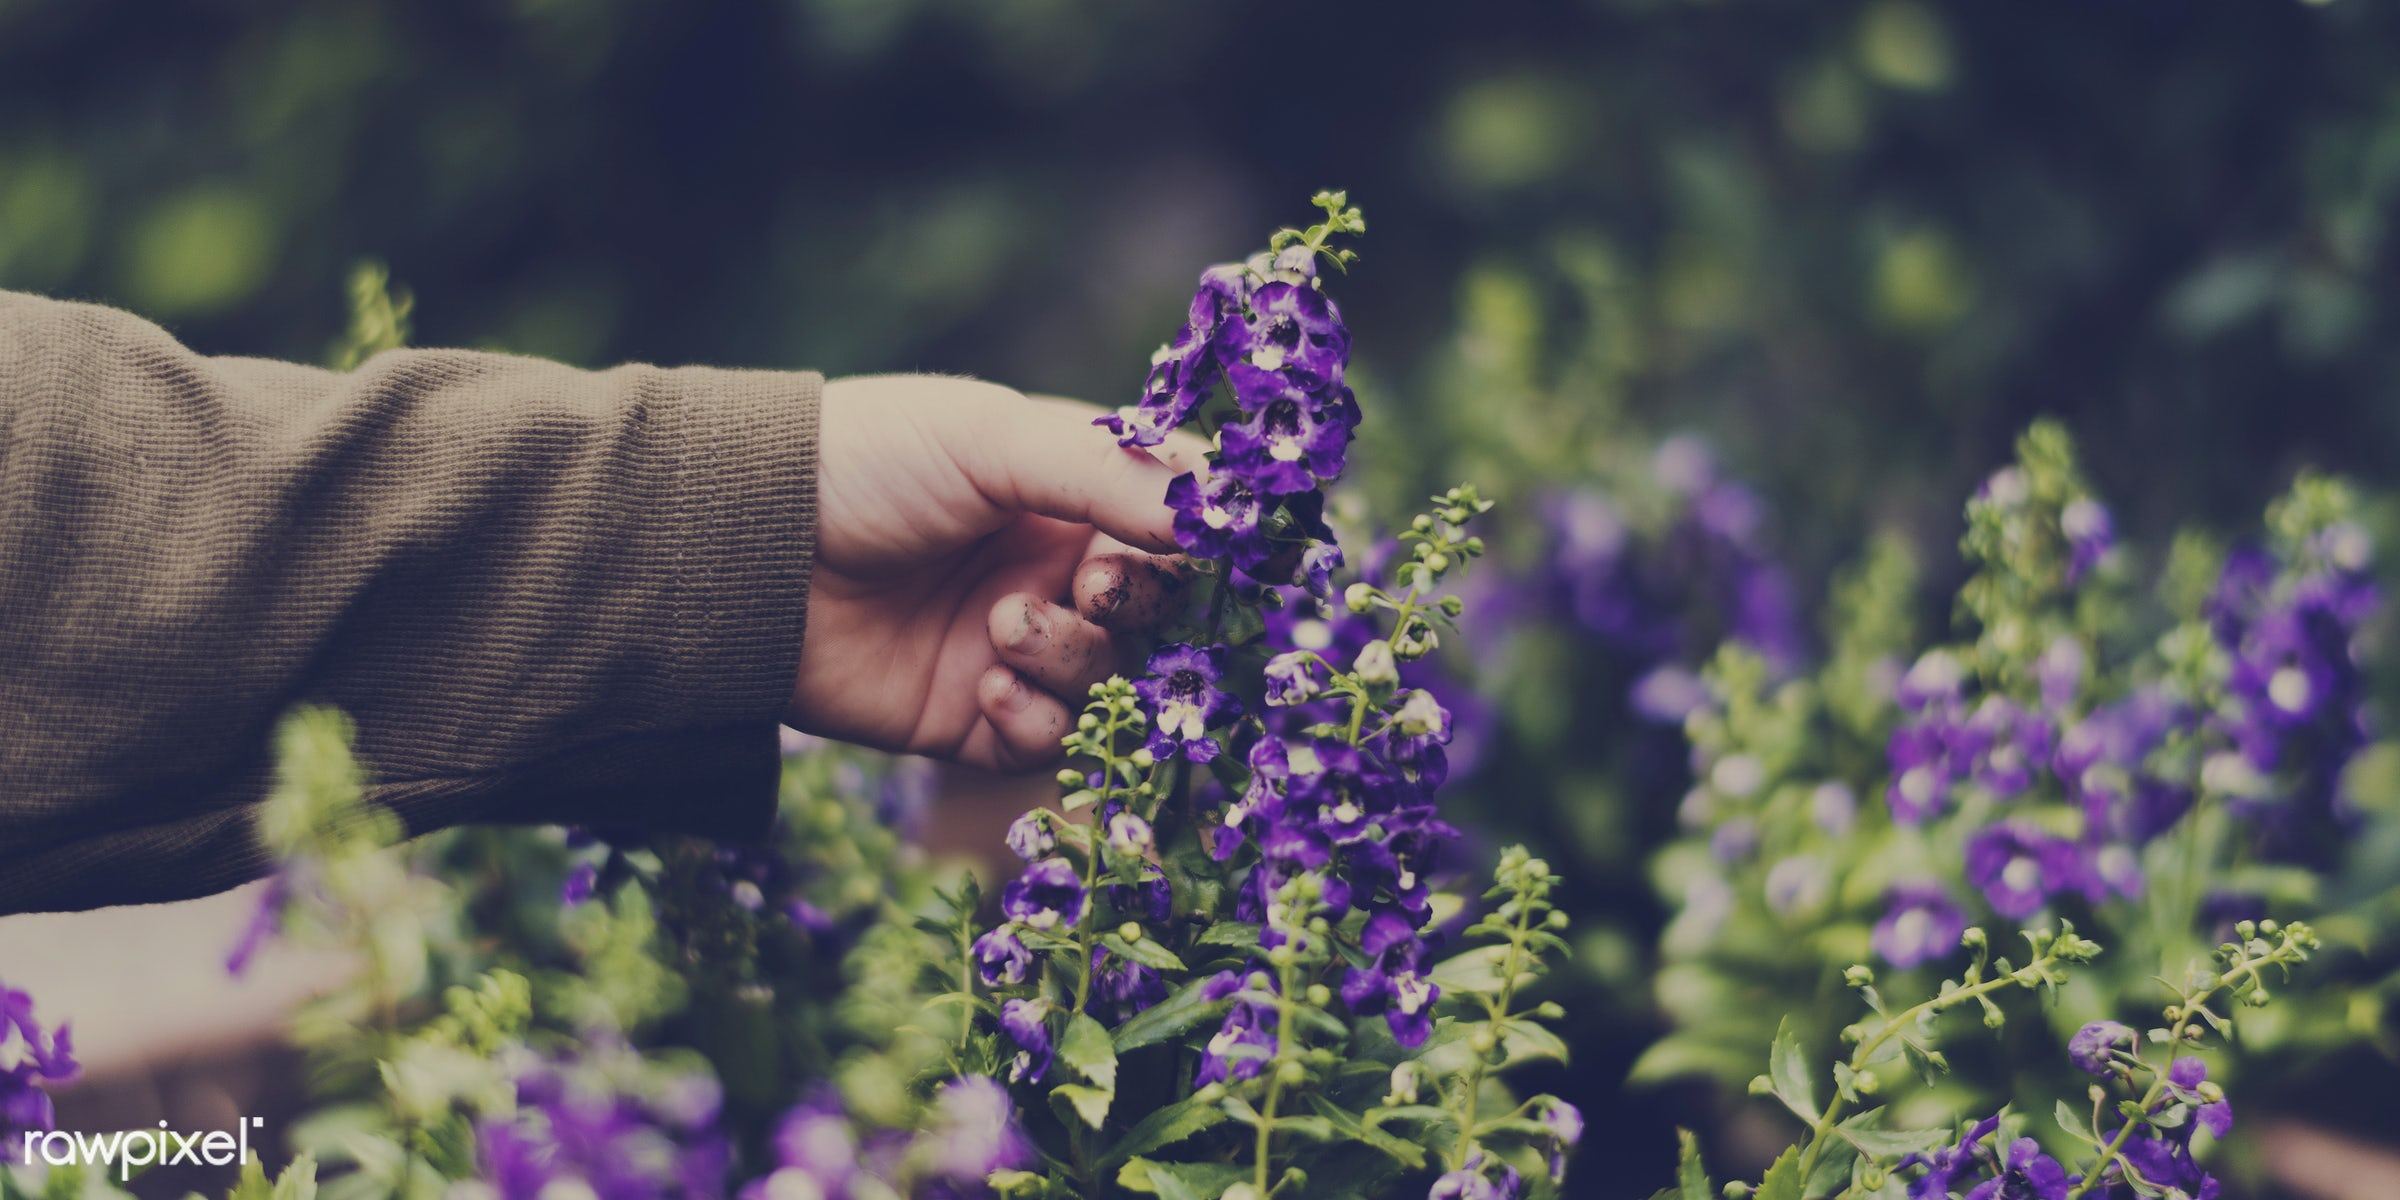 plant, relax, beauty, hand, nature, farmer, fresh, flower, activity, flora, hobby, agriculture, planting, leisure,...